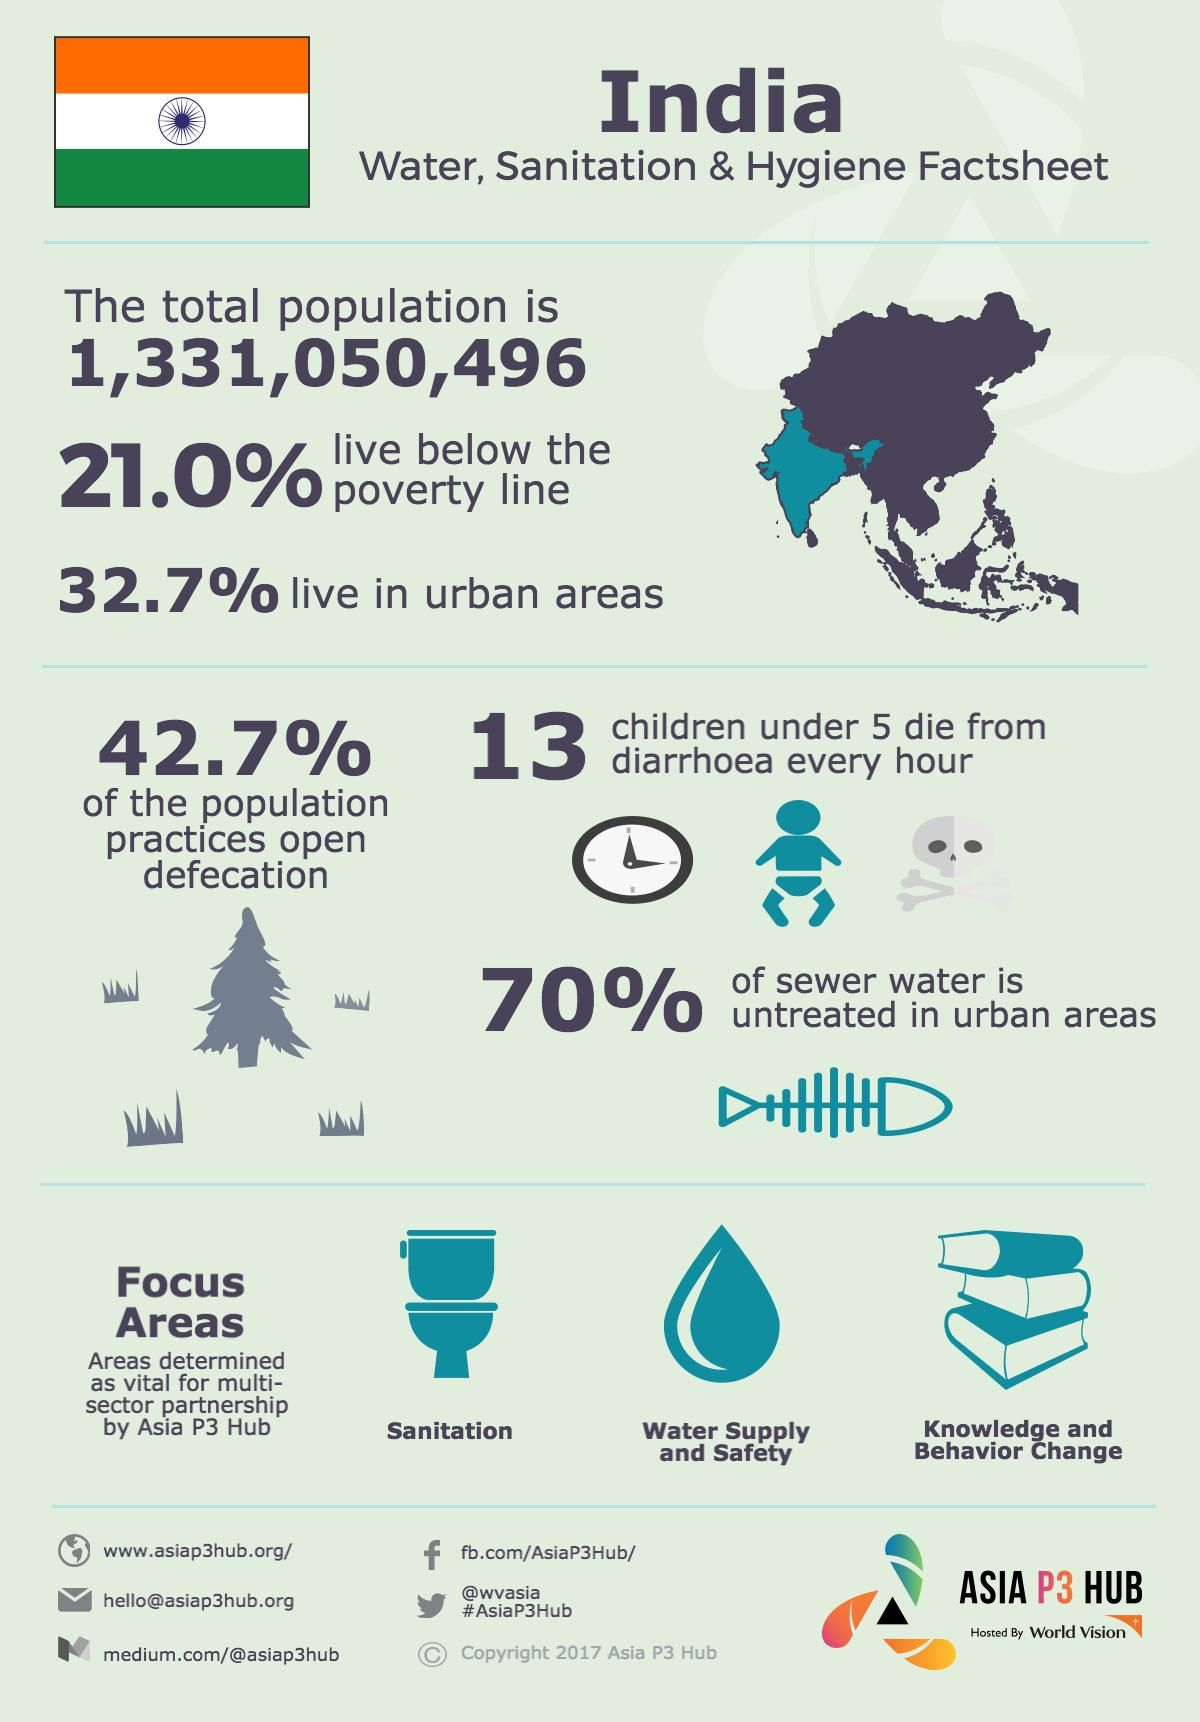 India Wash Facts Be Sure To Check Out Our Website For More